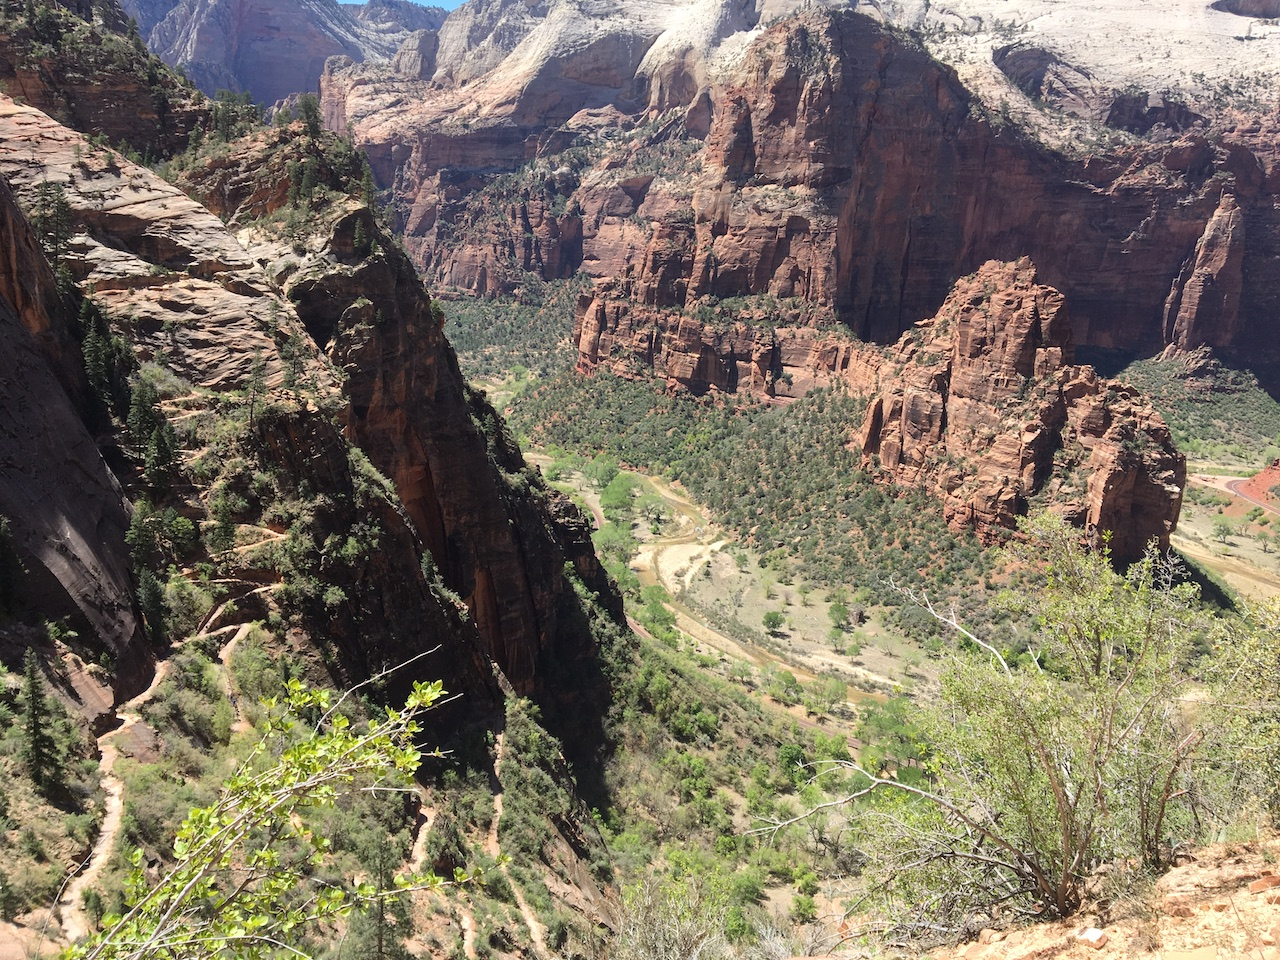 Episode #114- Zion National Park with Jim Skaggs and Jeff Hart